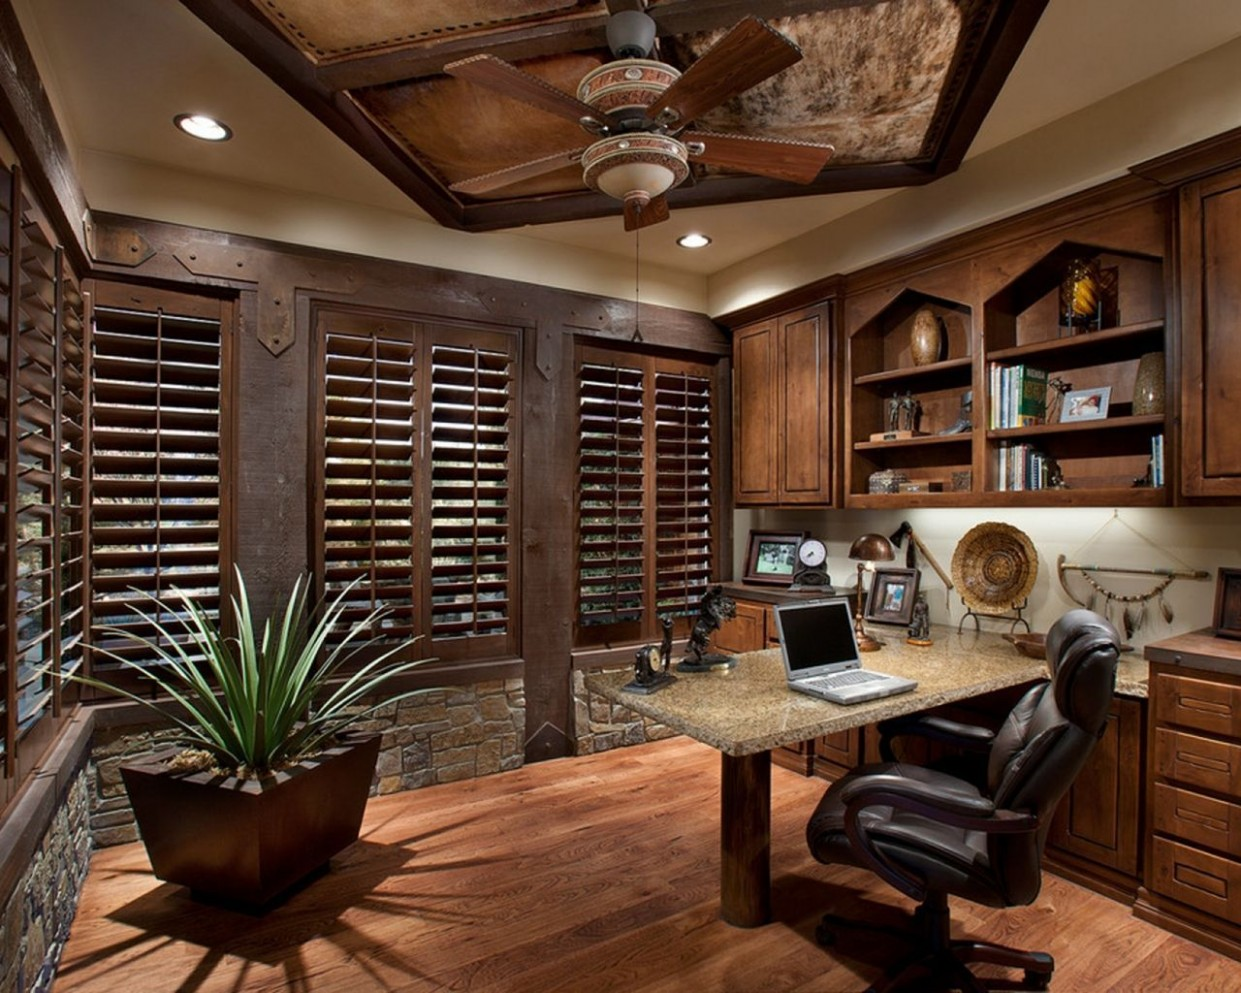 Pin on Home Decoration Ideas - Home Office Ideas Rustic